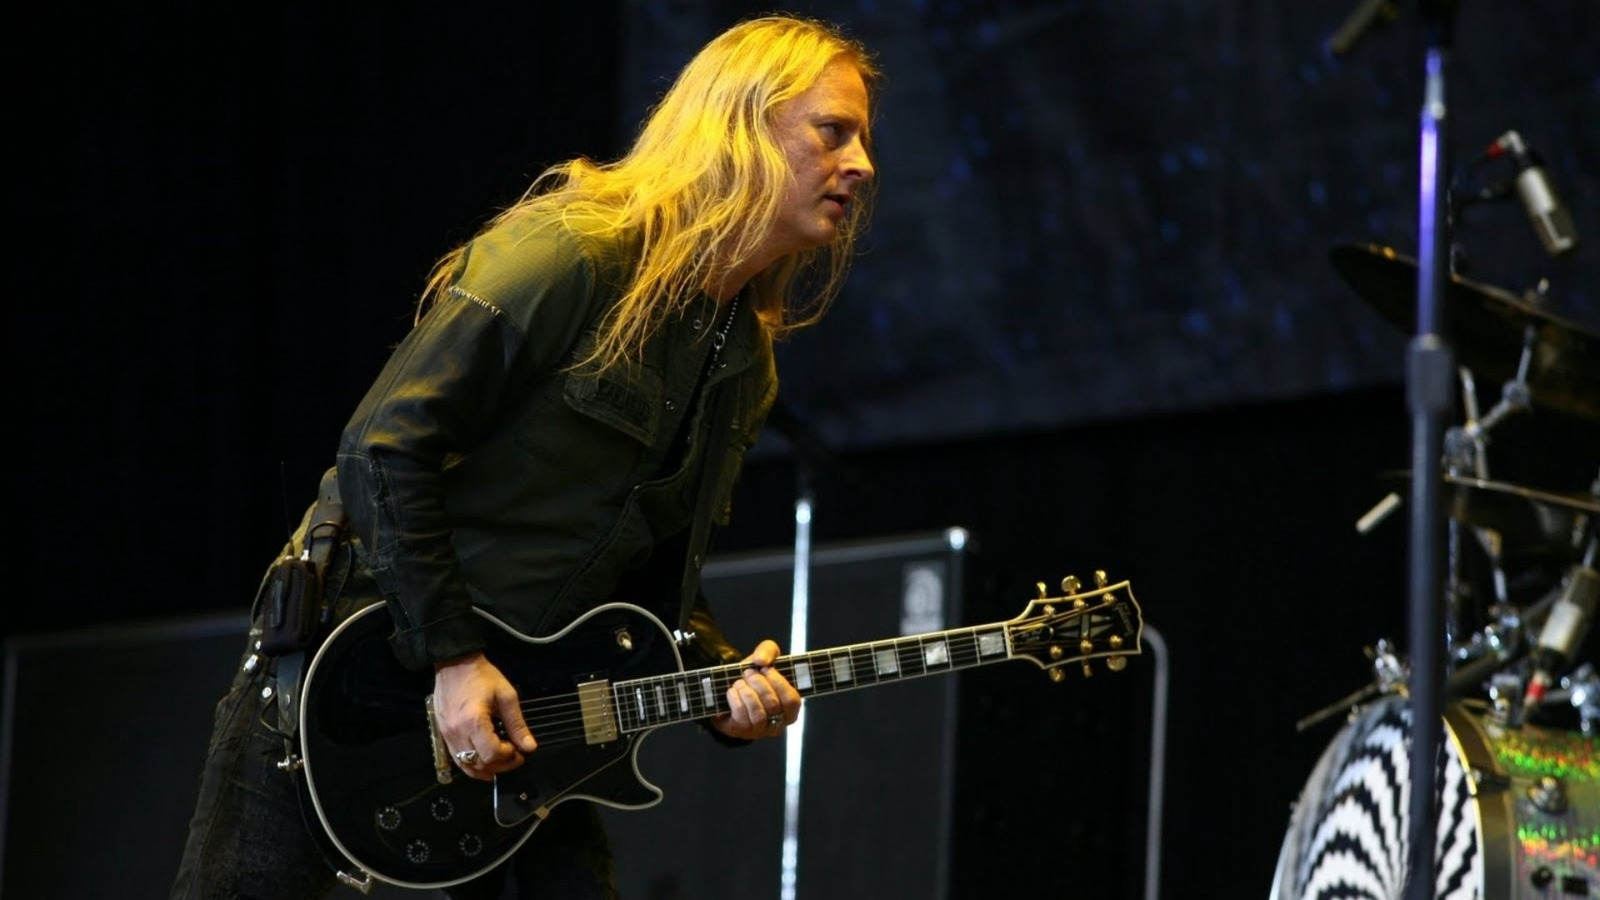 Download wallpaper 1600x900 jerry cantrell hair guitar play 1600x900